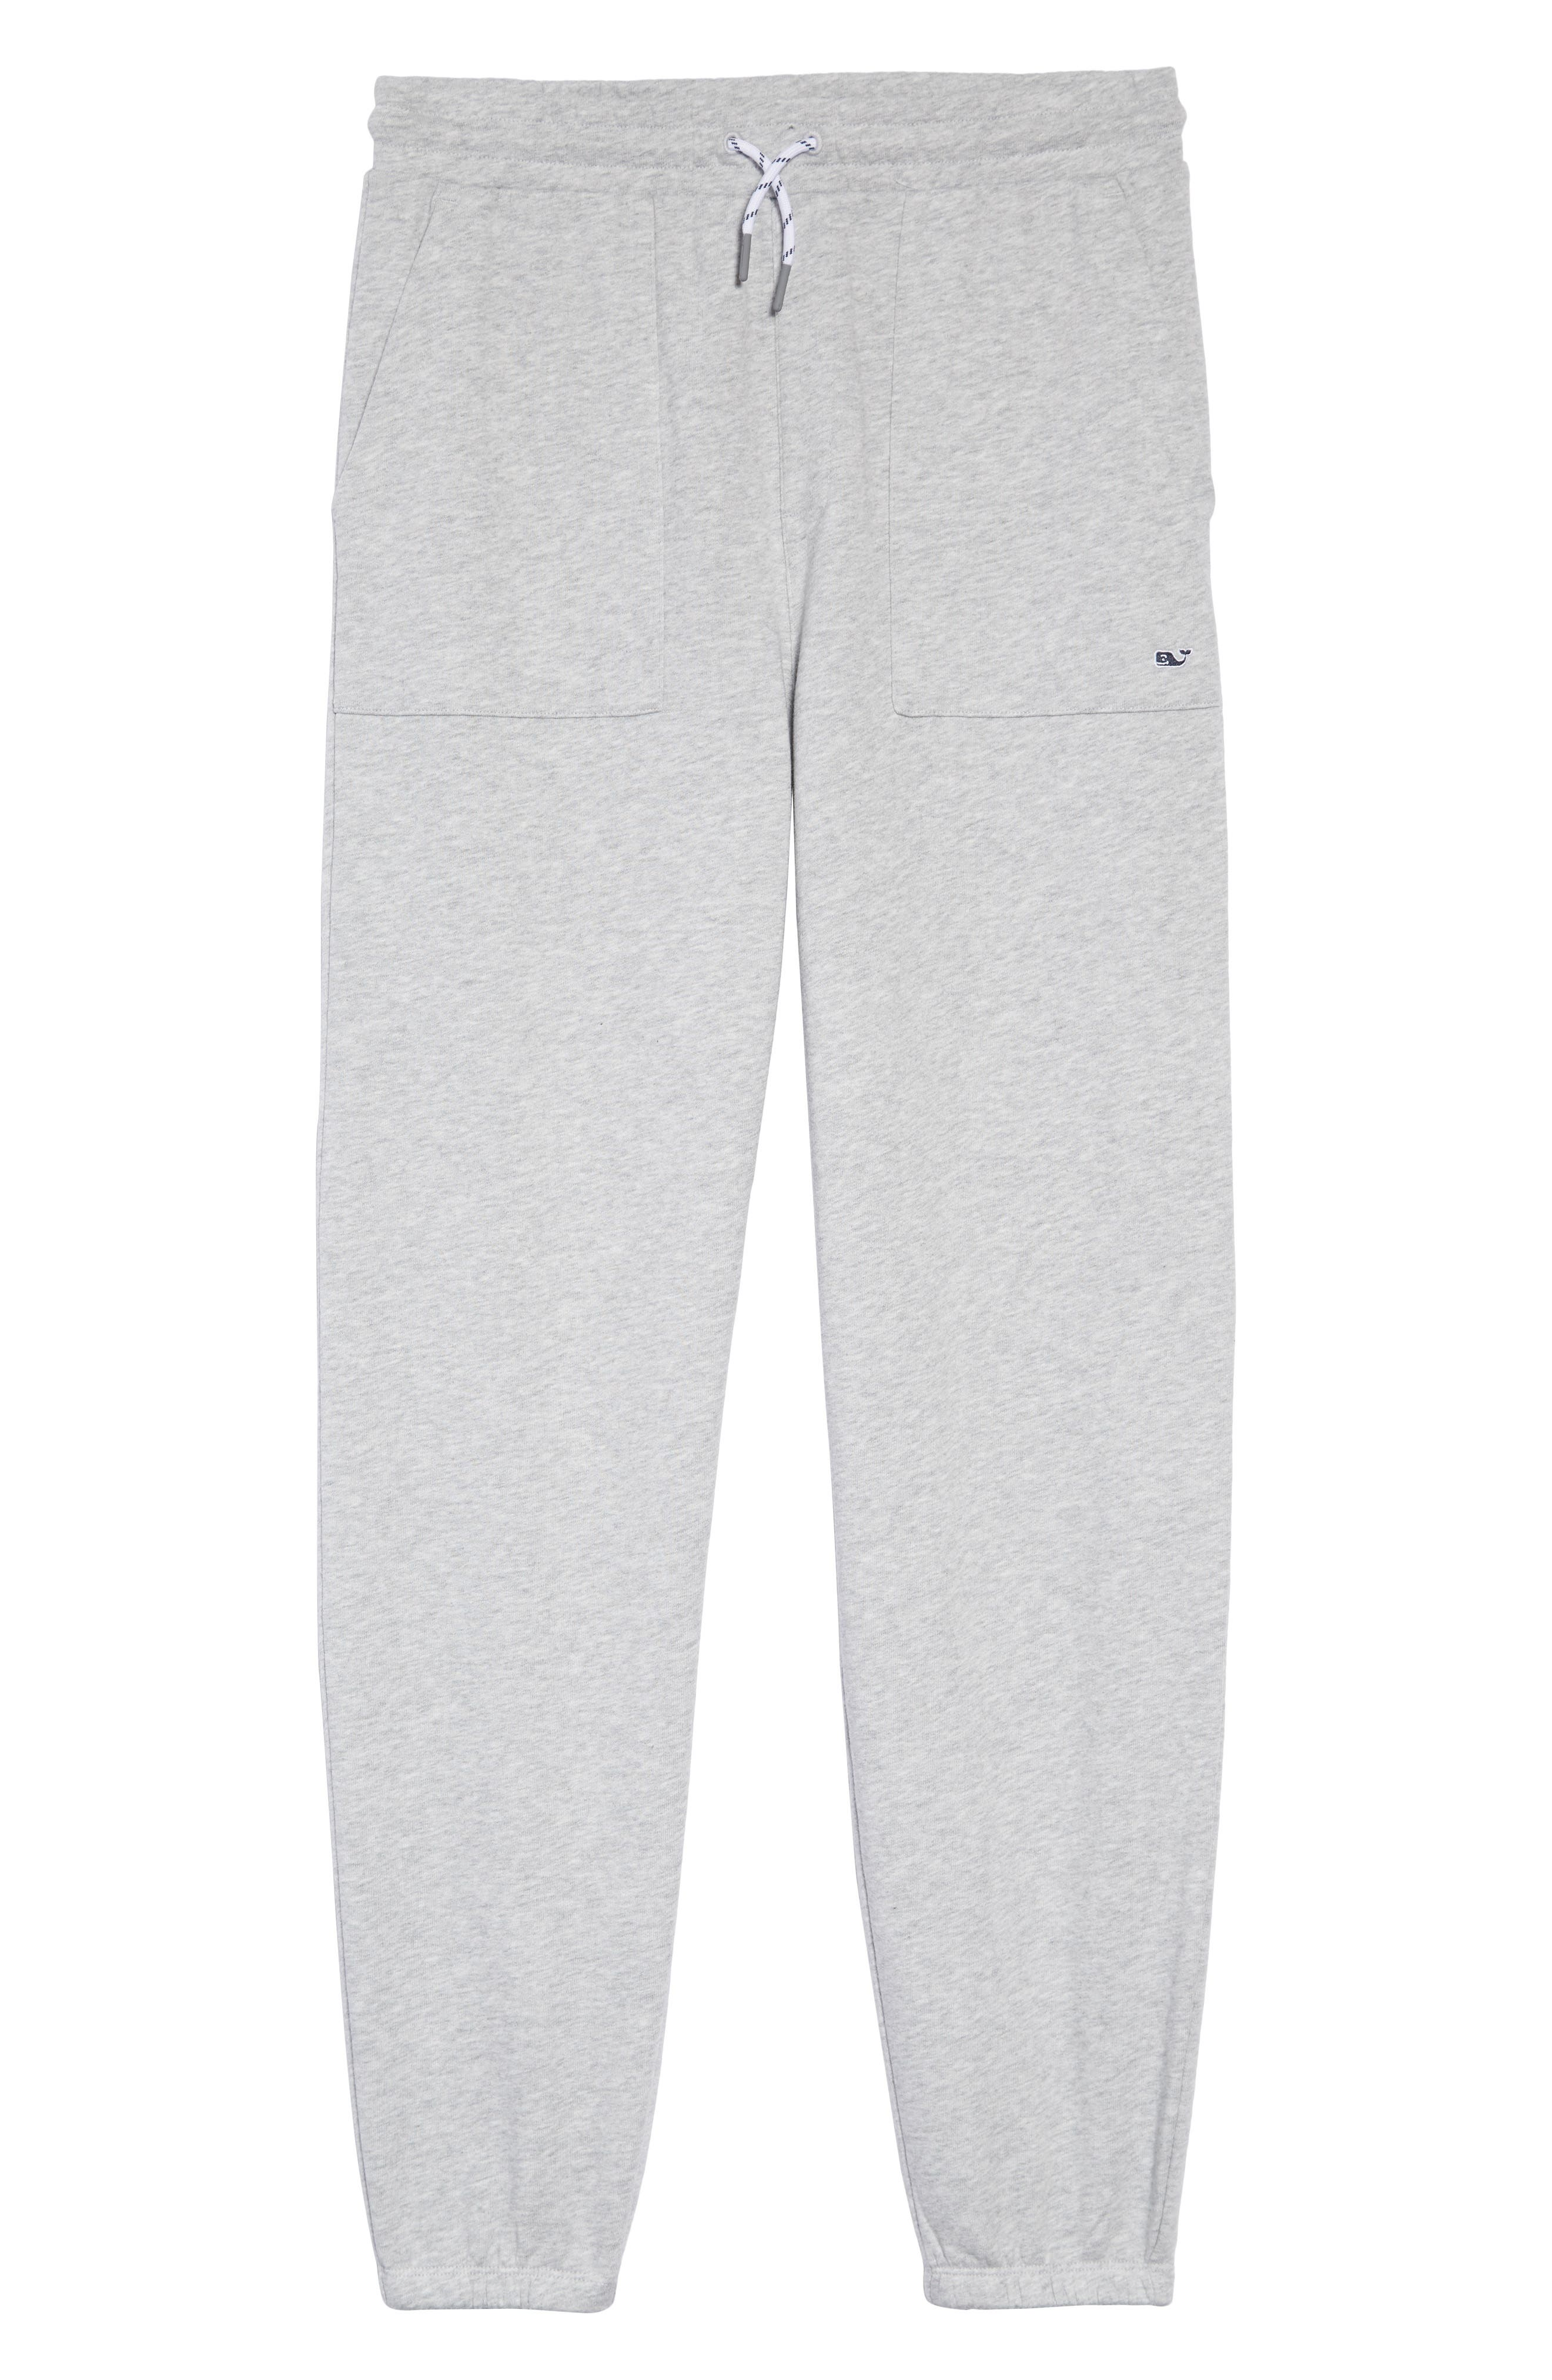 Heritage Terry Jogger Pants,                         Main,                         color, GRAY HEATHER